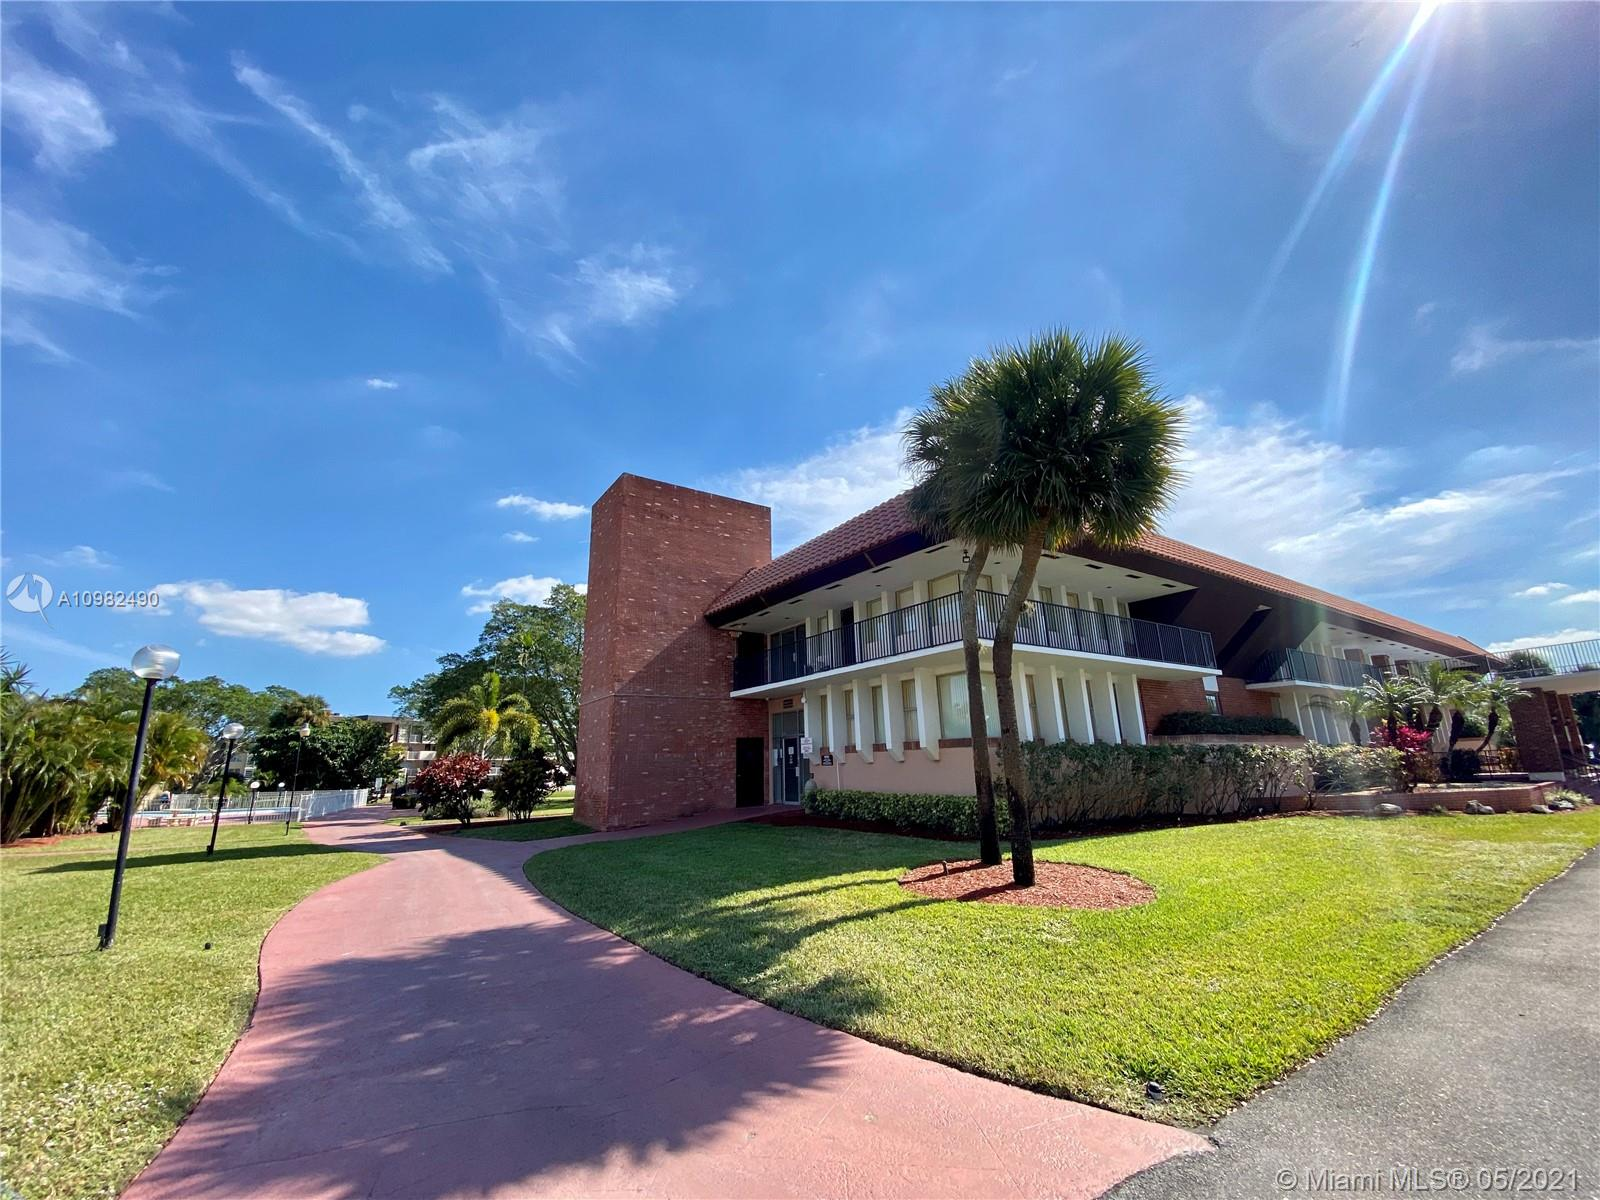 Adult 55+ AMAZING OPPORTUNITY. Amazing corner unit on ground floor w/low HOA. Spacious floorplan w/ 1 Bed + 1 Bath. Kitchen in great condition. Terrace with yard access. Huge bedroom. Fitness & billiard room, heated pools, BBQ & picnic area. Internet service included in HOA maintenance fee. Very secure community. Owner offers financing.